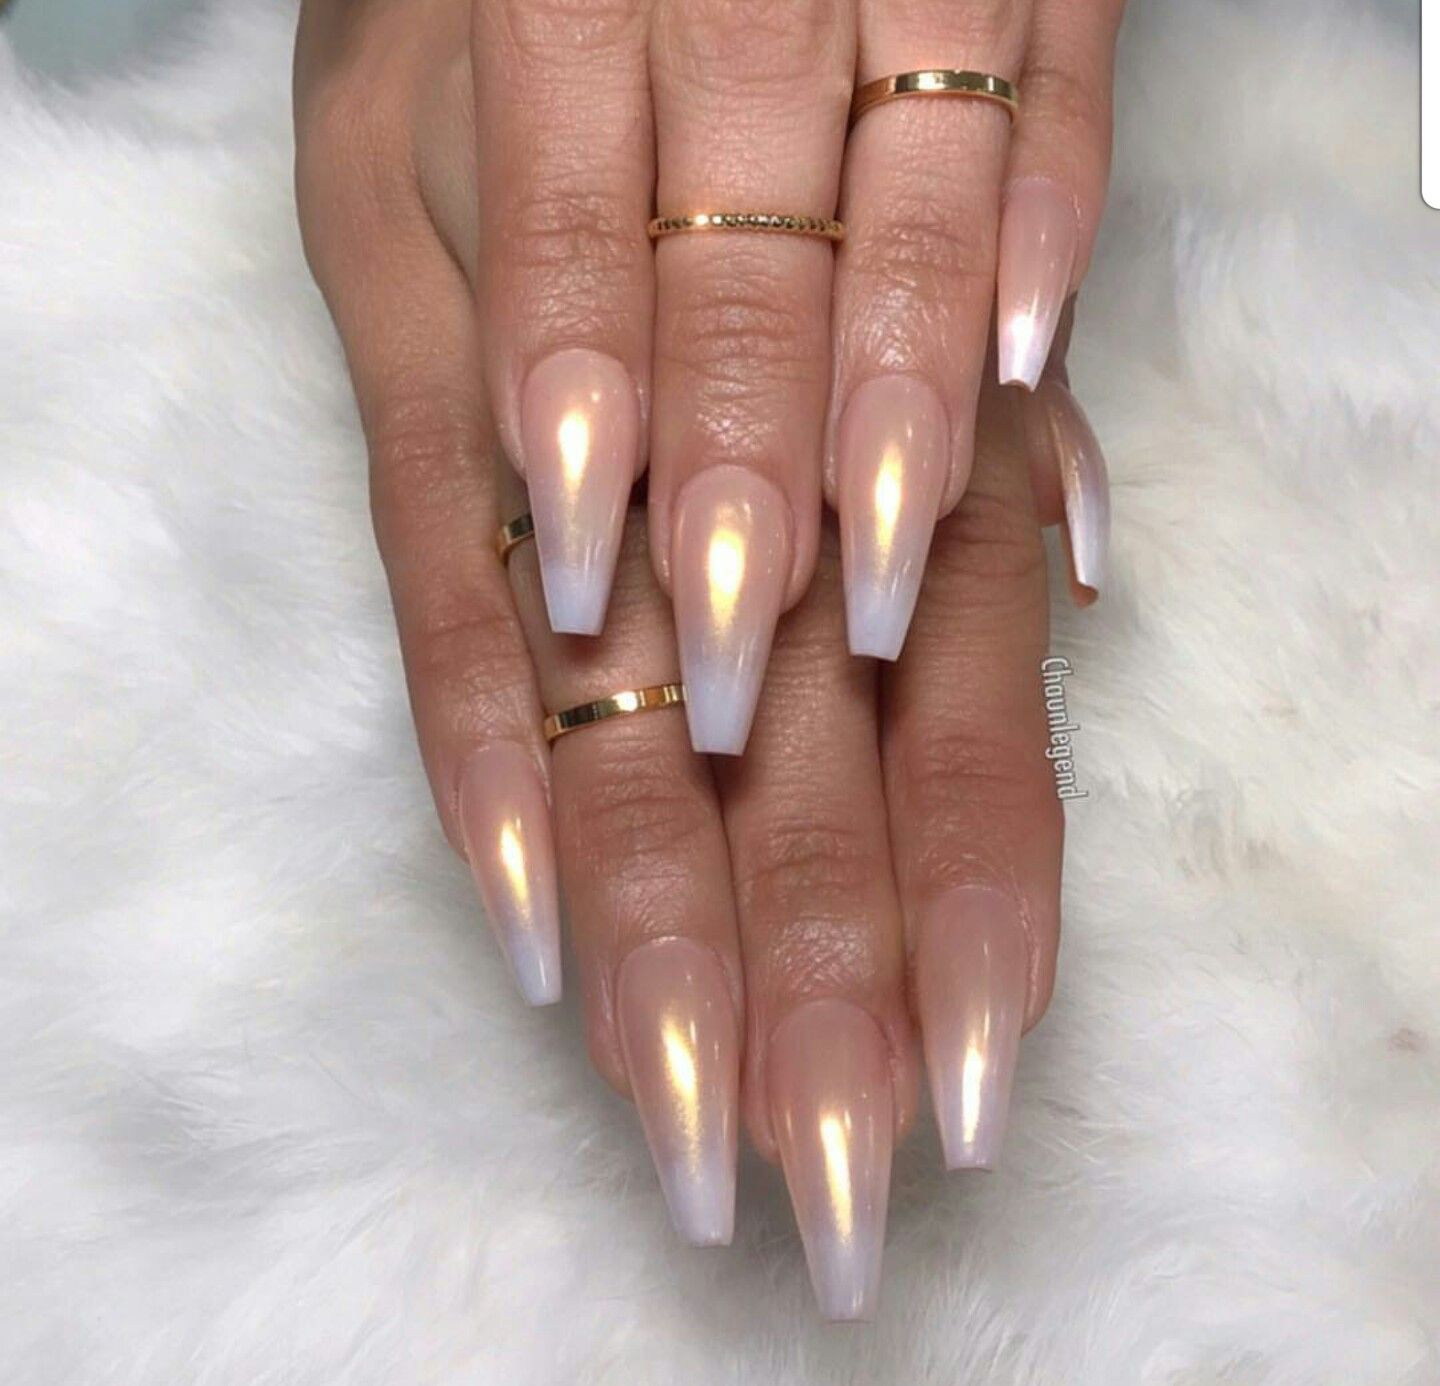 Pin by enticing on long nails | Pinterest | Prom nails and Hand care